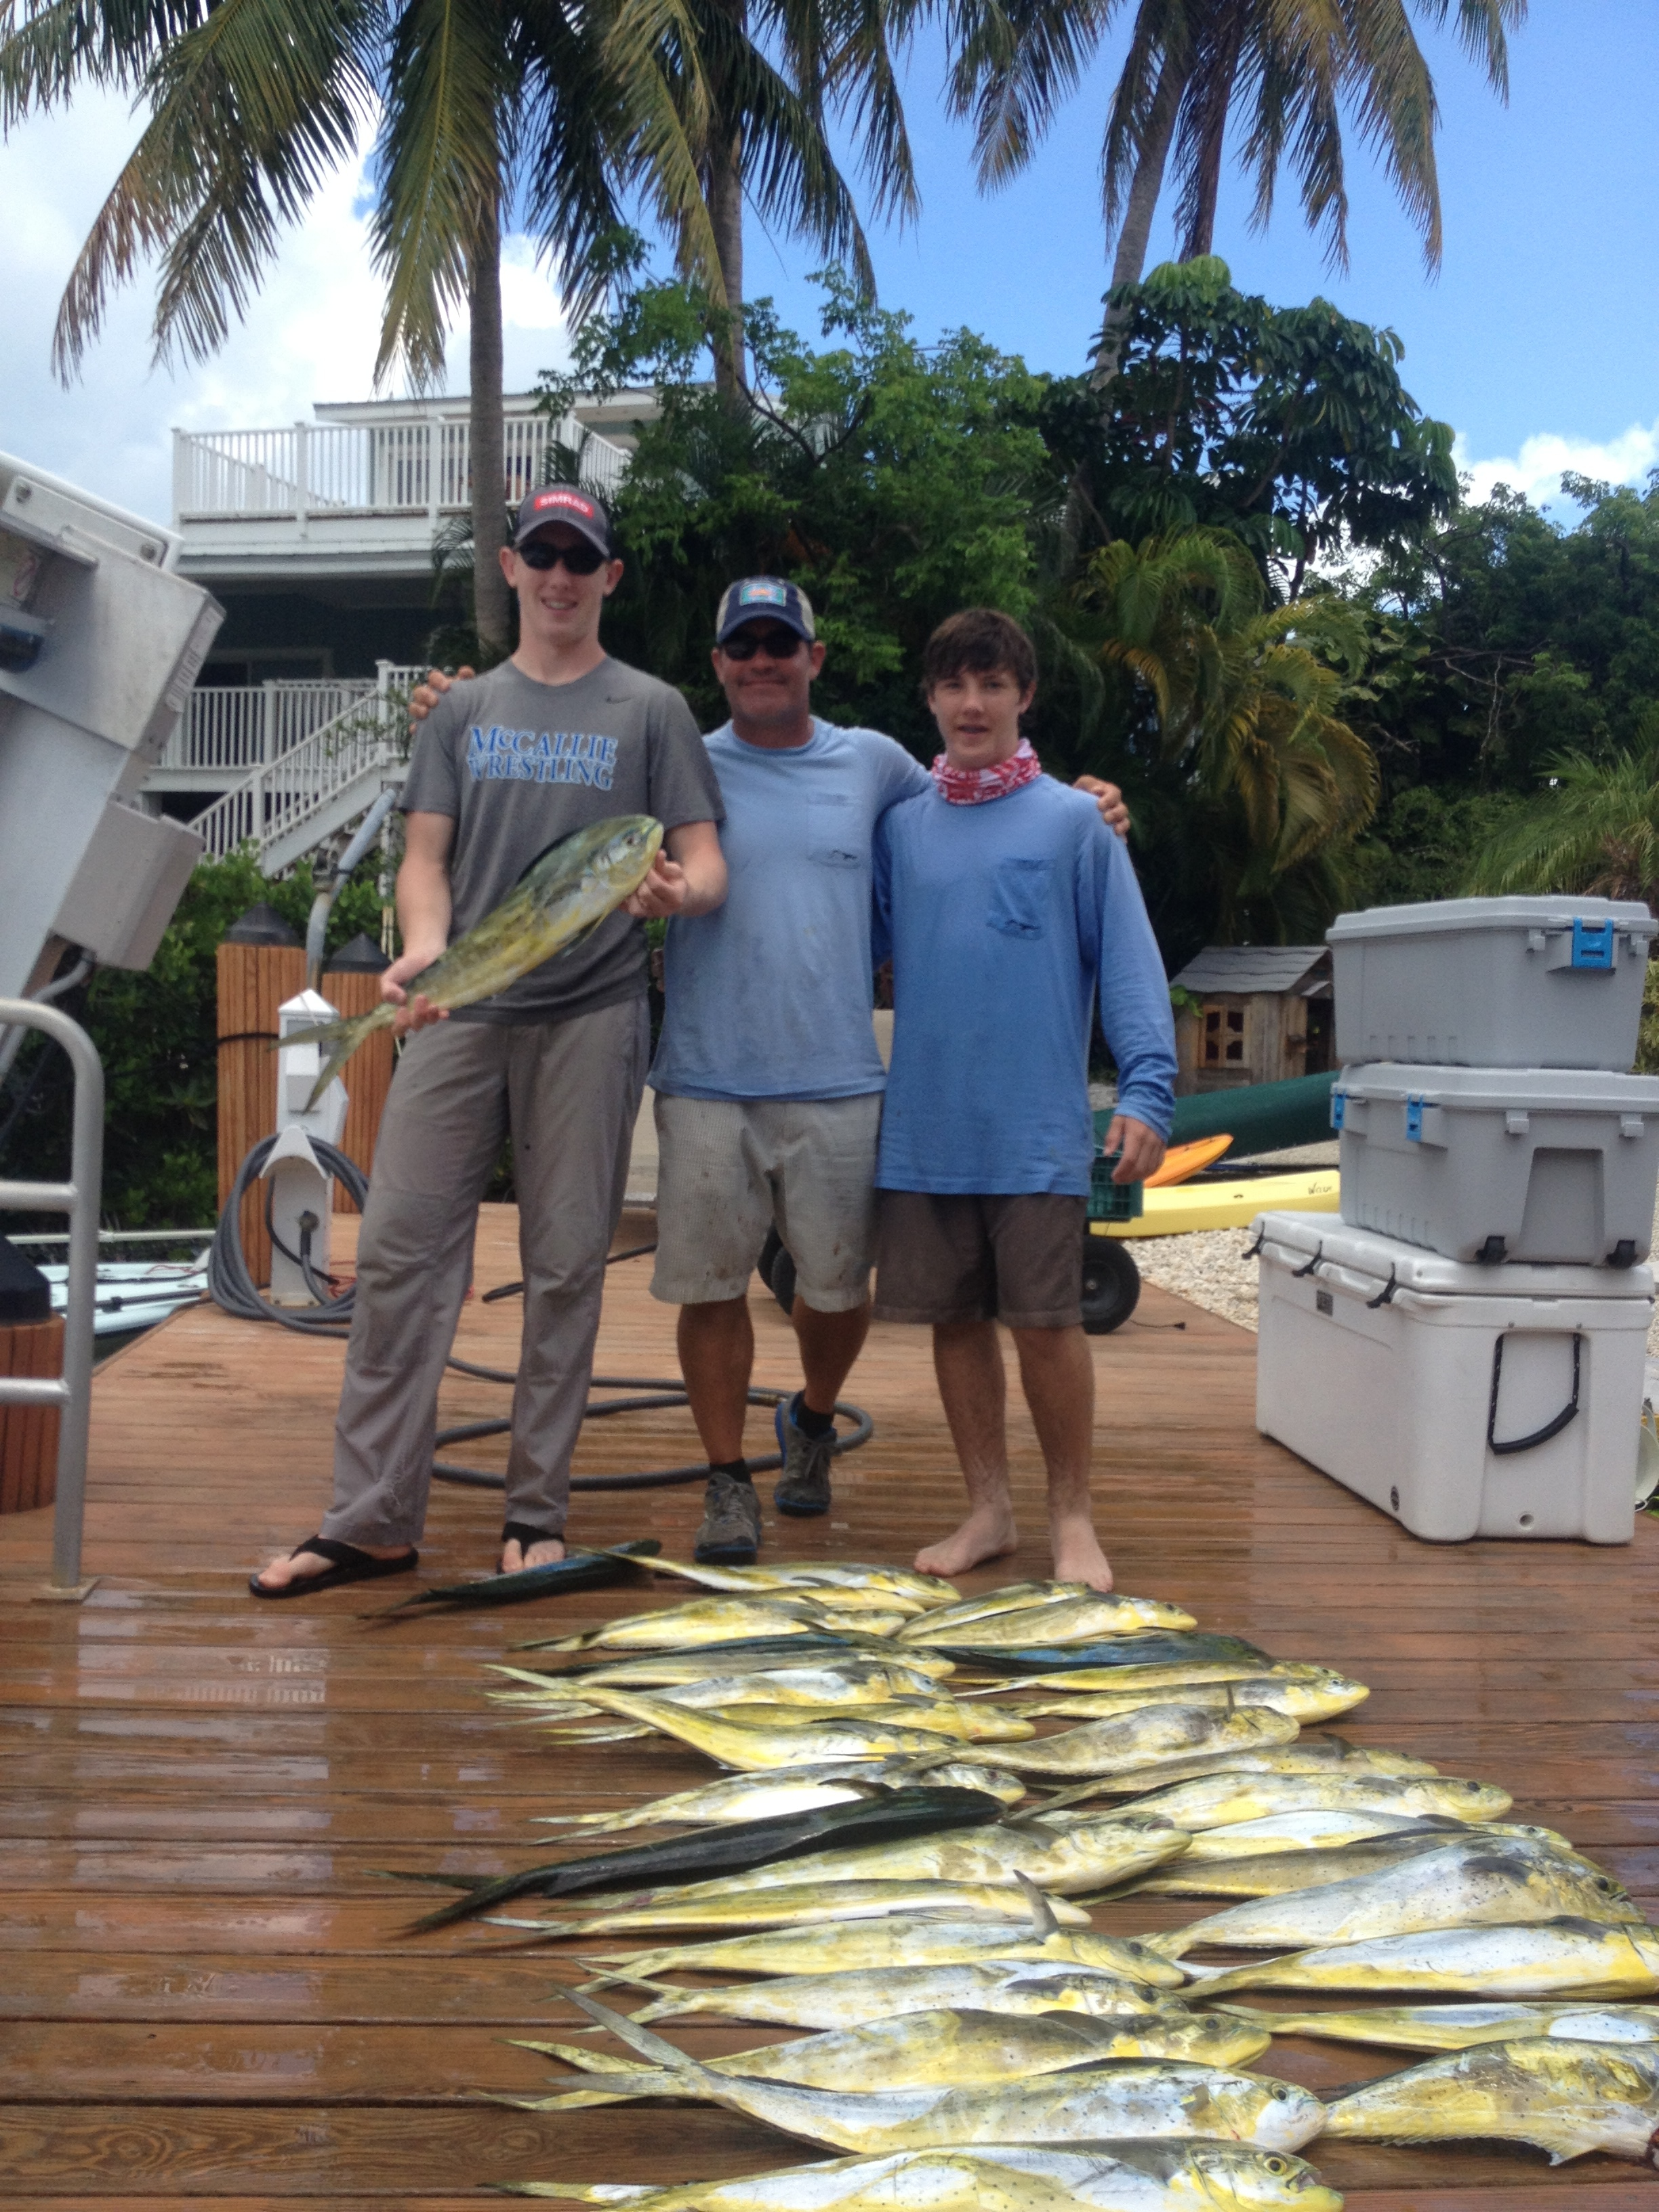 33 free range organic, hook caught dolphin. Can NOT get any better protein source than these!